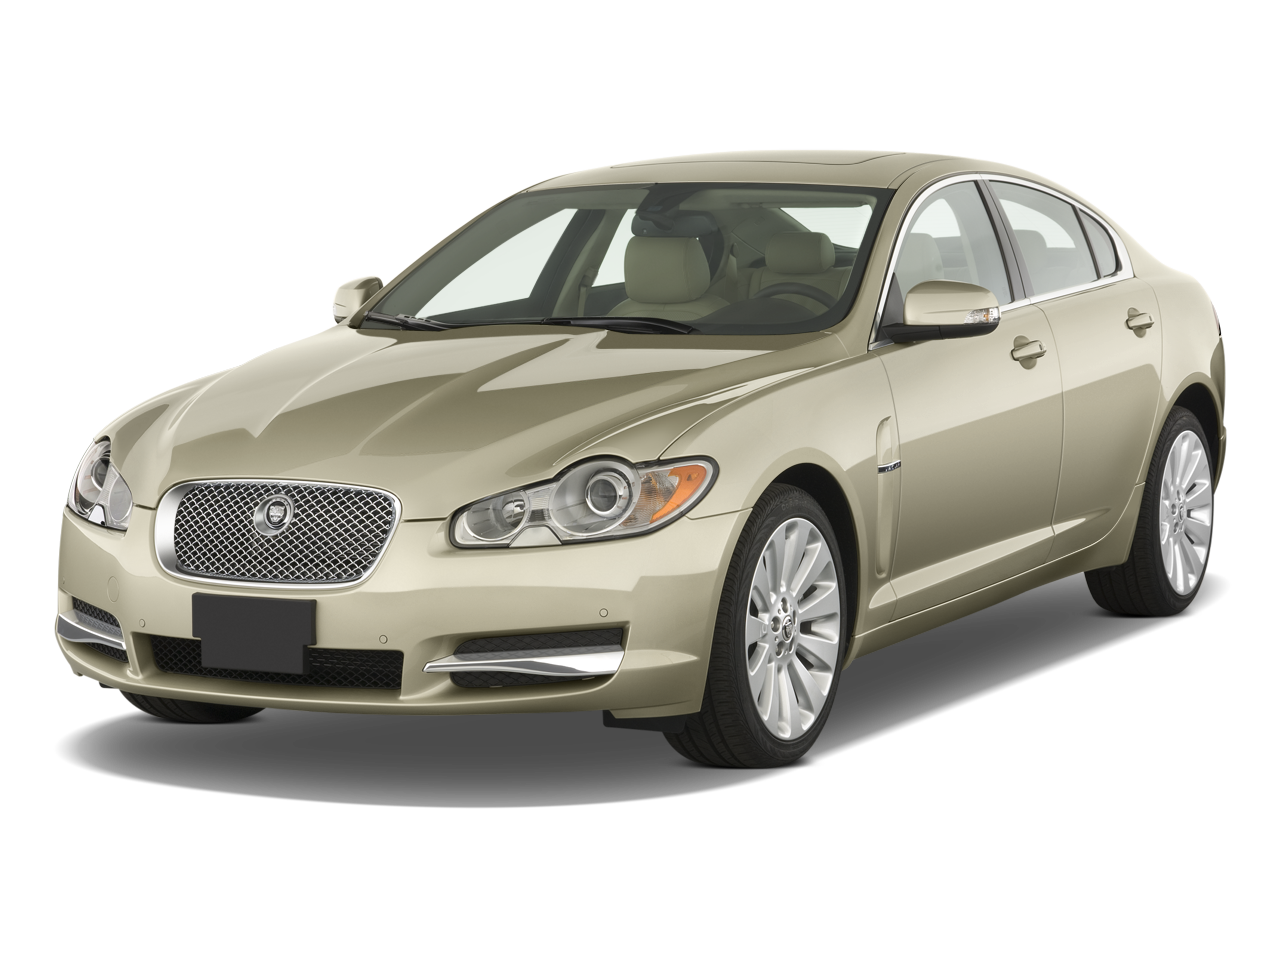 2009 jaguar xf jaguar luxury sedan review automobile magazine. Black Bedroom Furniture Sets. Home Design Ideas